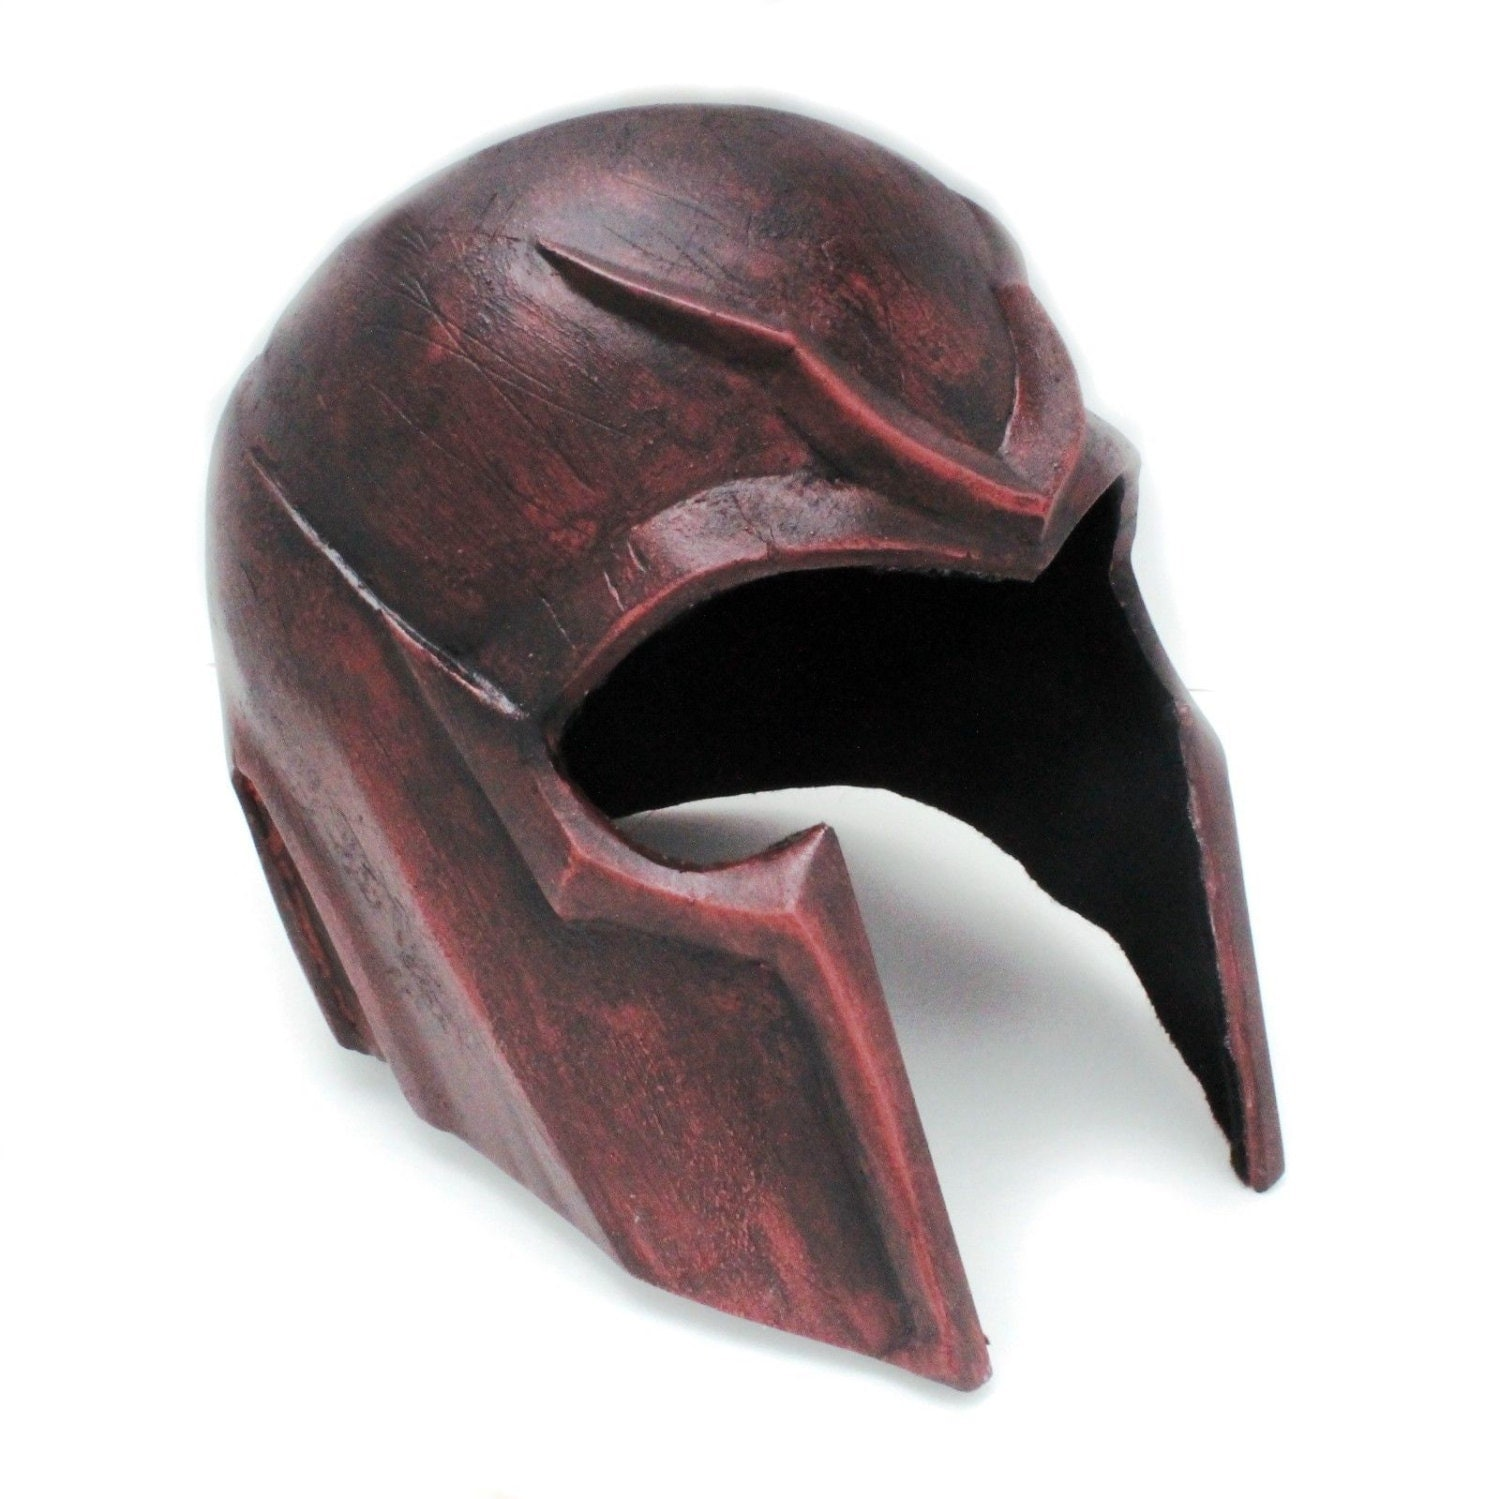 magneto helmet days of future past - photo #7